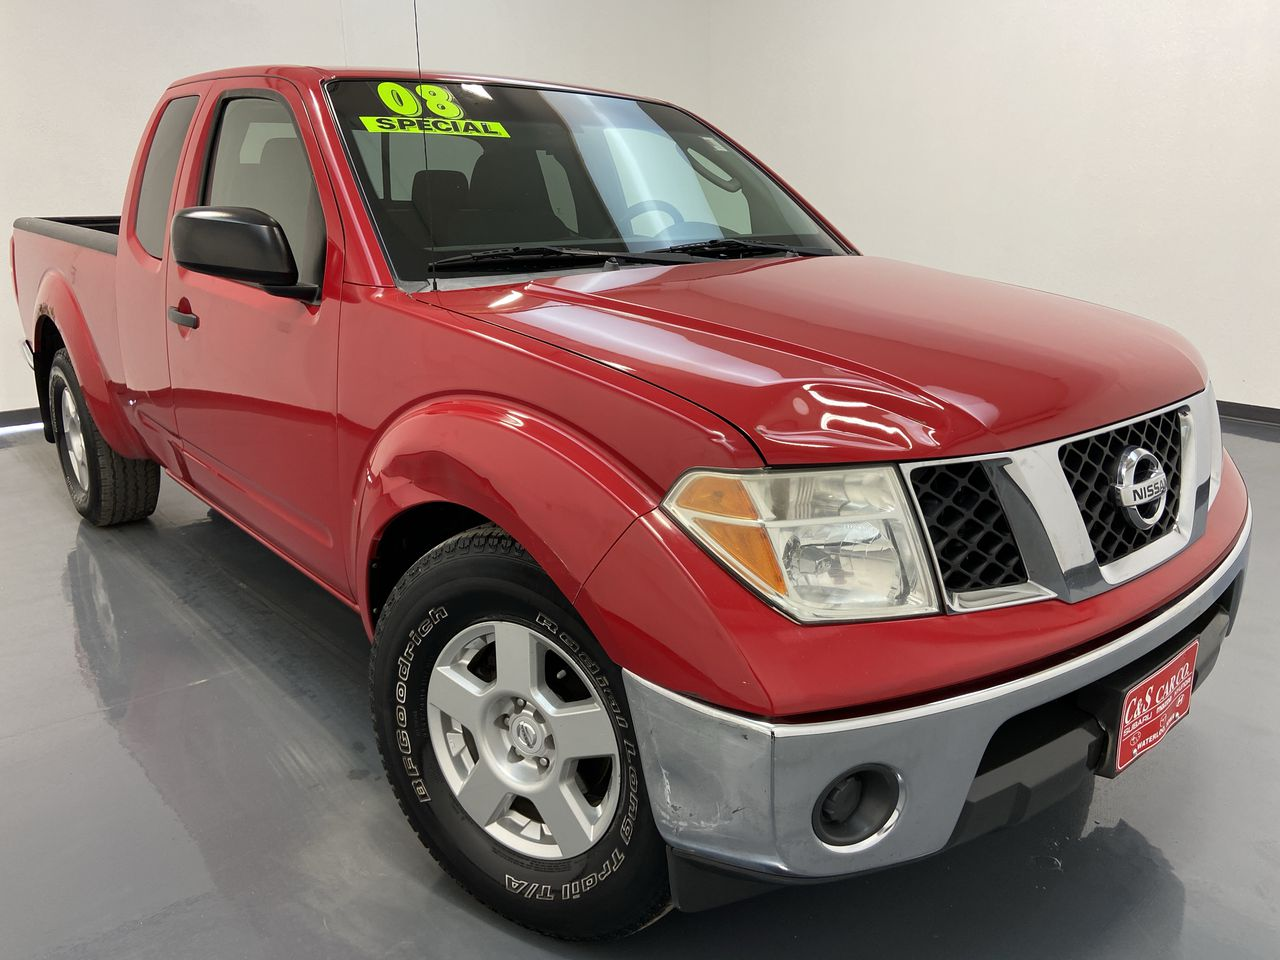 2008 Nissan Frontier King Cab V6  - 16111A  - C & S Car Company